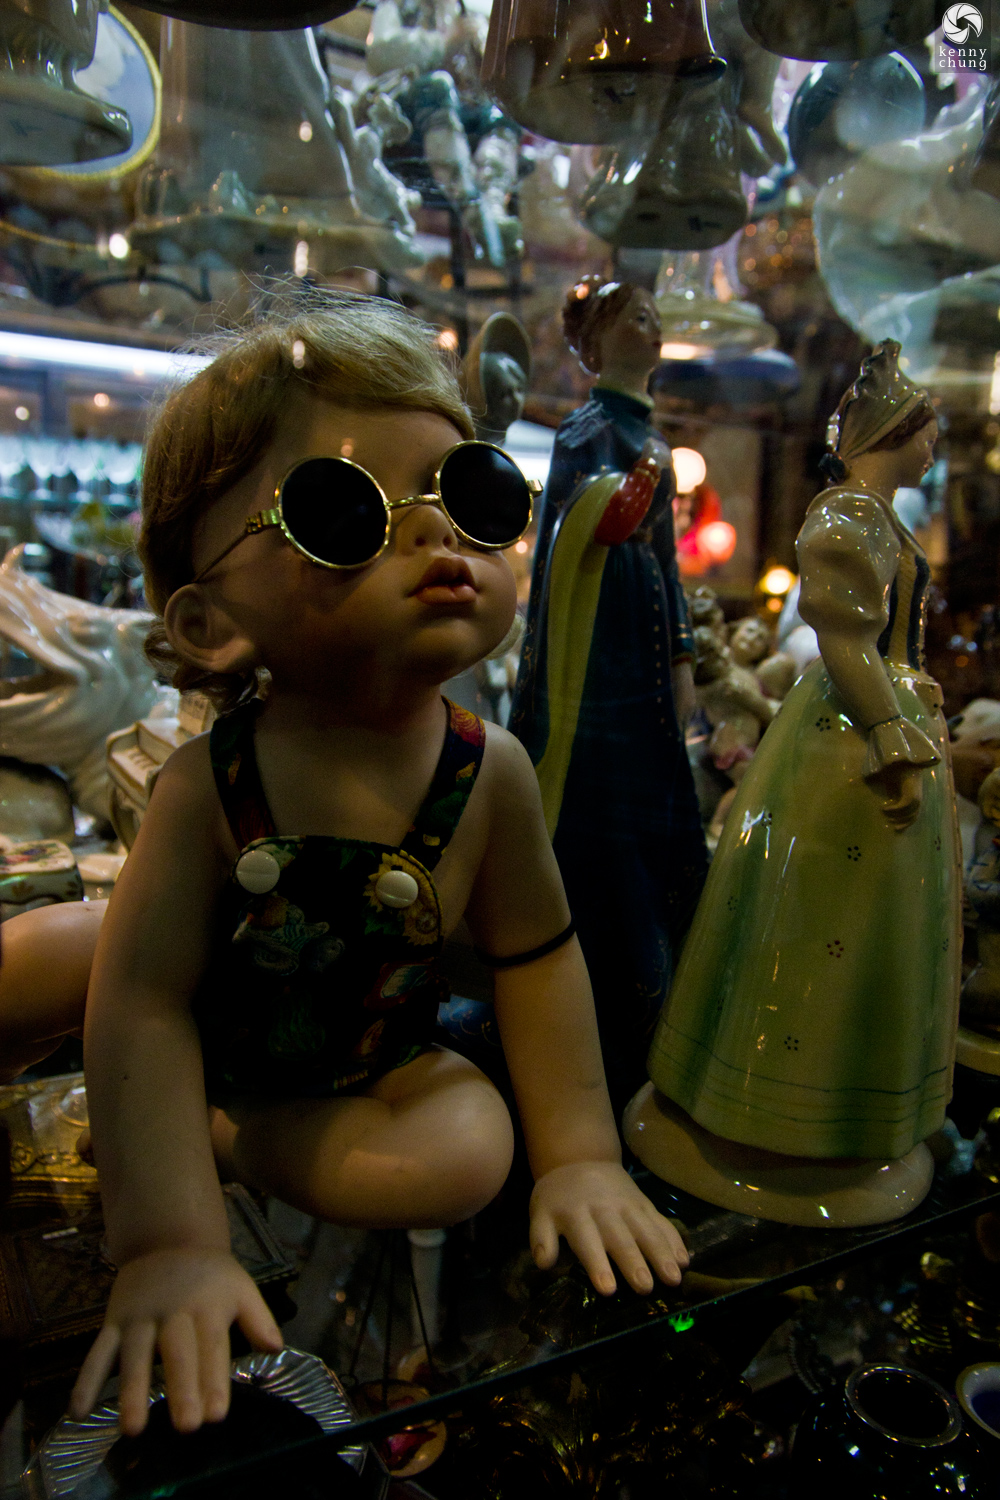 Cool baby figurine wearing sunglasses in San Telmo